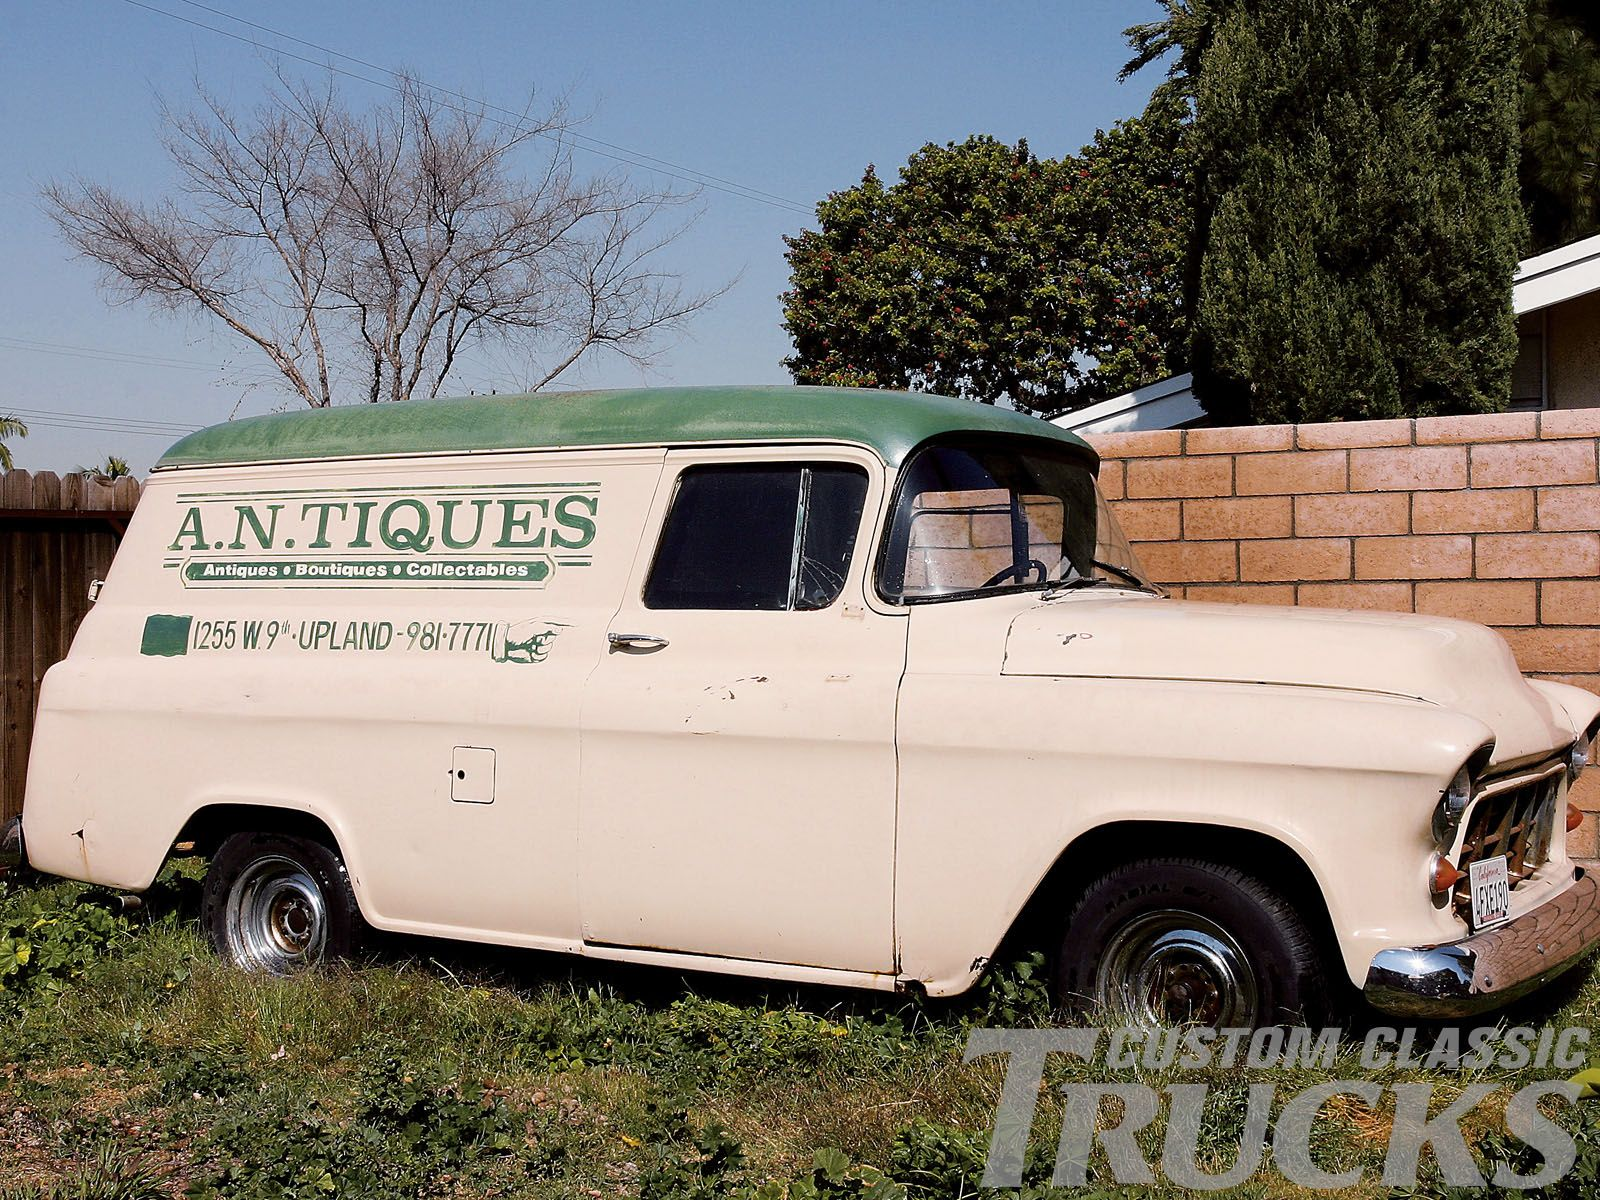 Pin by Jim Johnson on Vintage Truck Signs | Pinterest | Truck signs ...